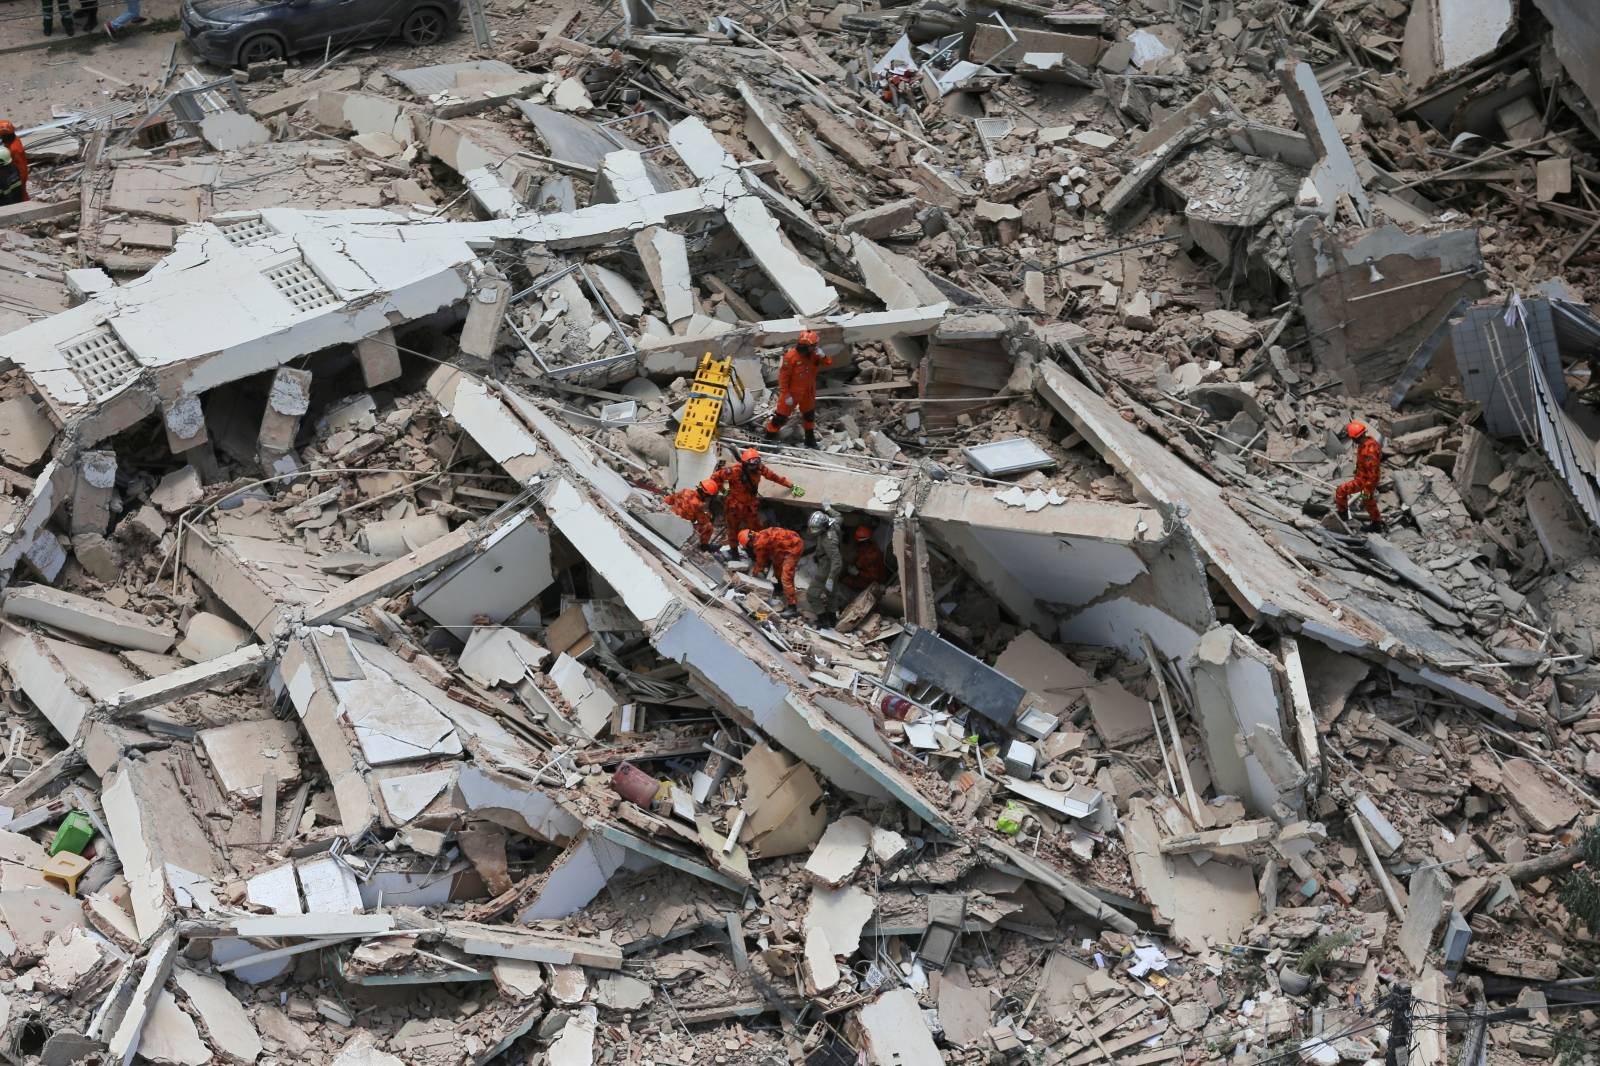 Rescue workers work at the site where a seven-story residential building collapsed in Fortaleza